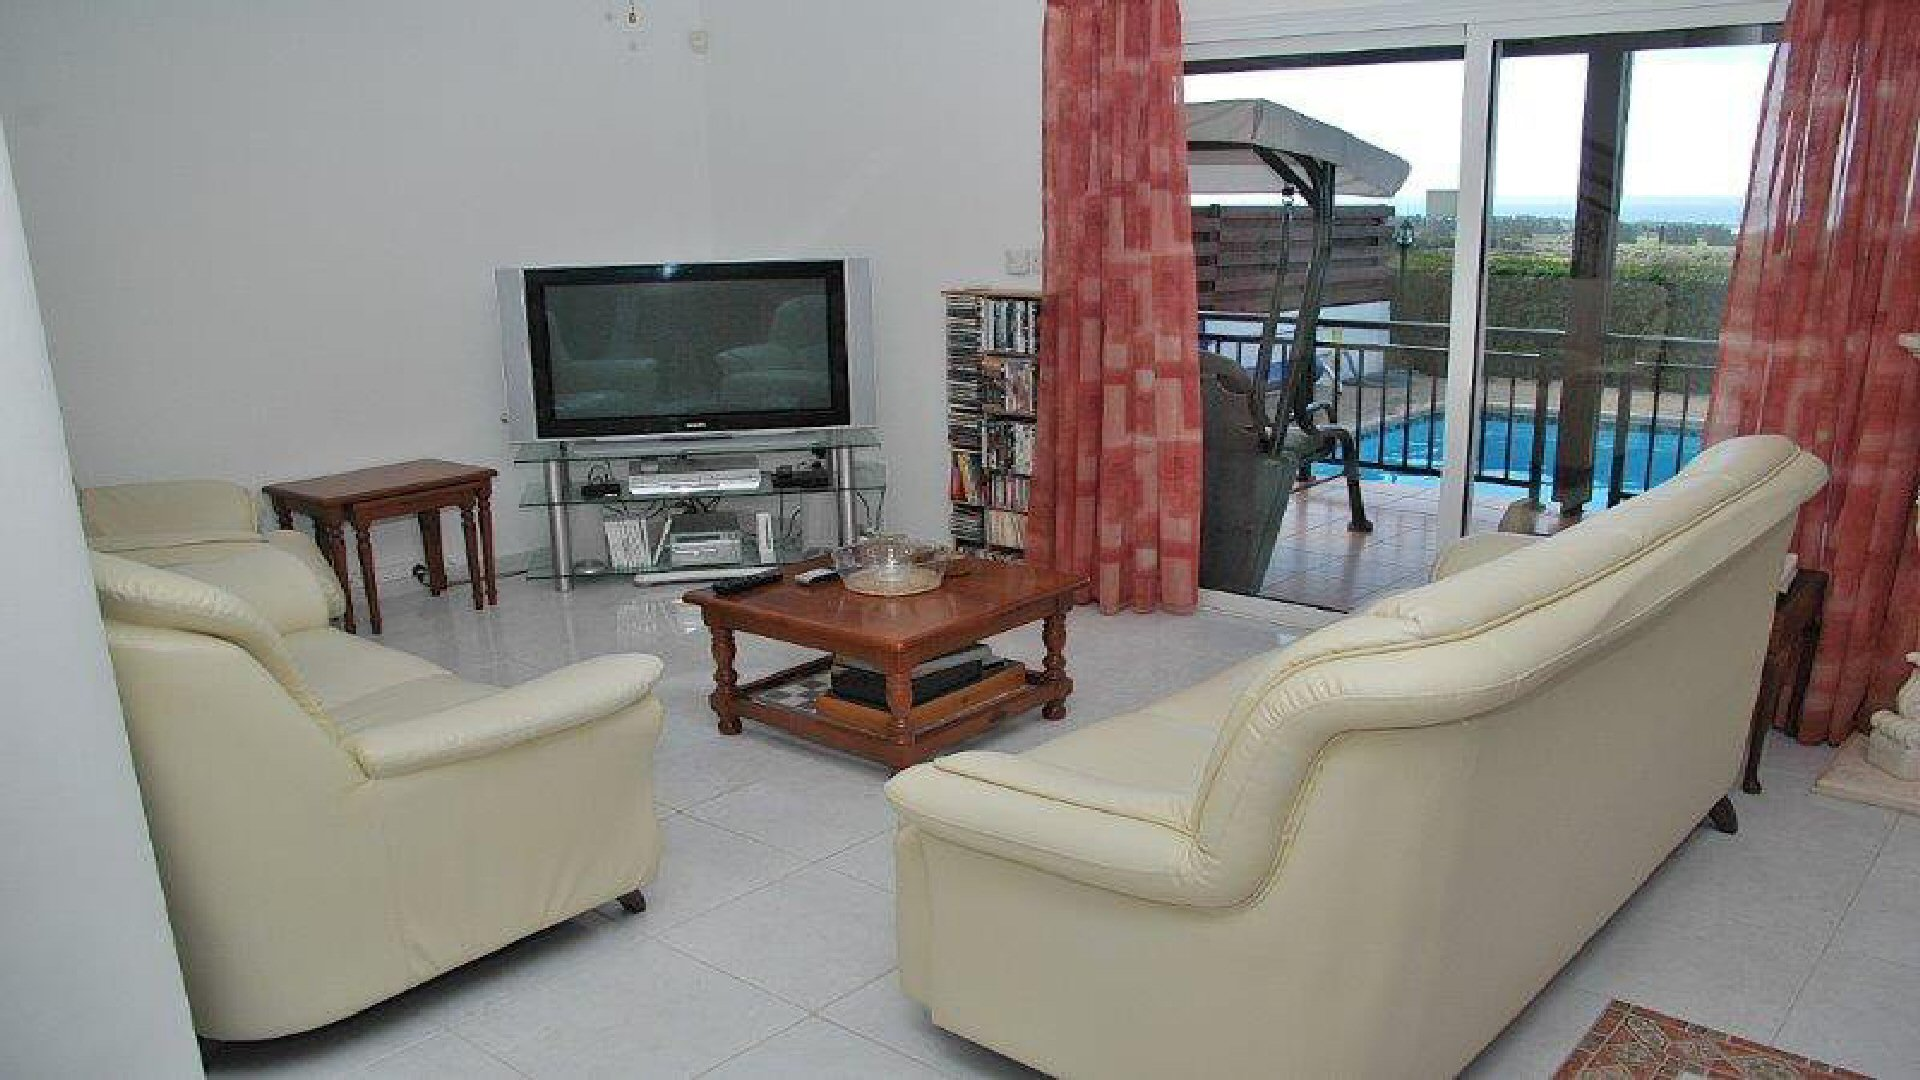 Holidays Villas Villa Rentals Holidays In Paphos Cyprus With Private Pool And Spa